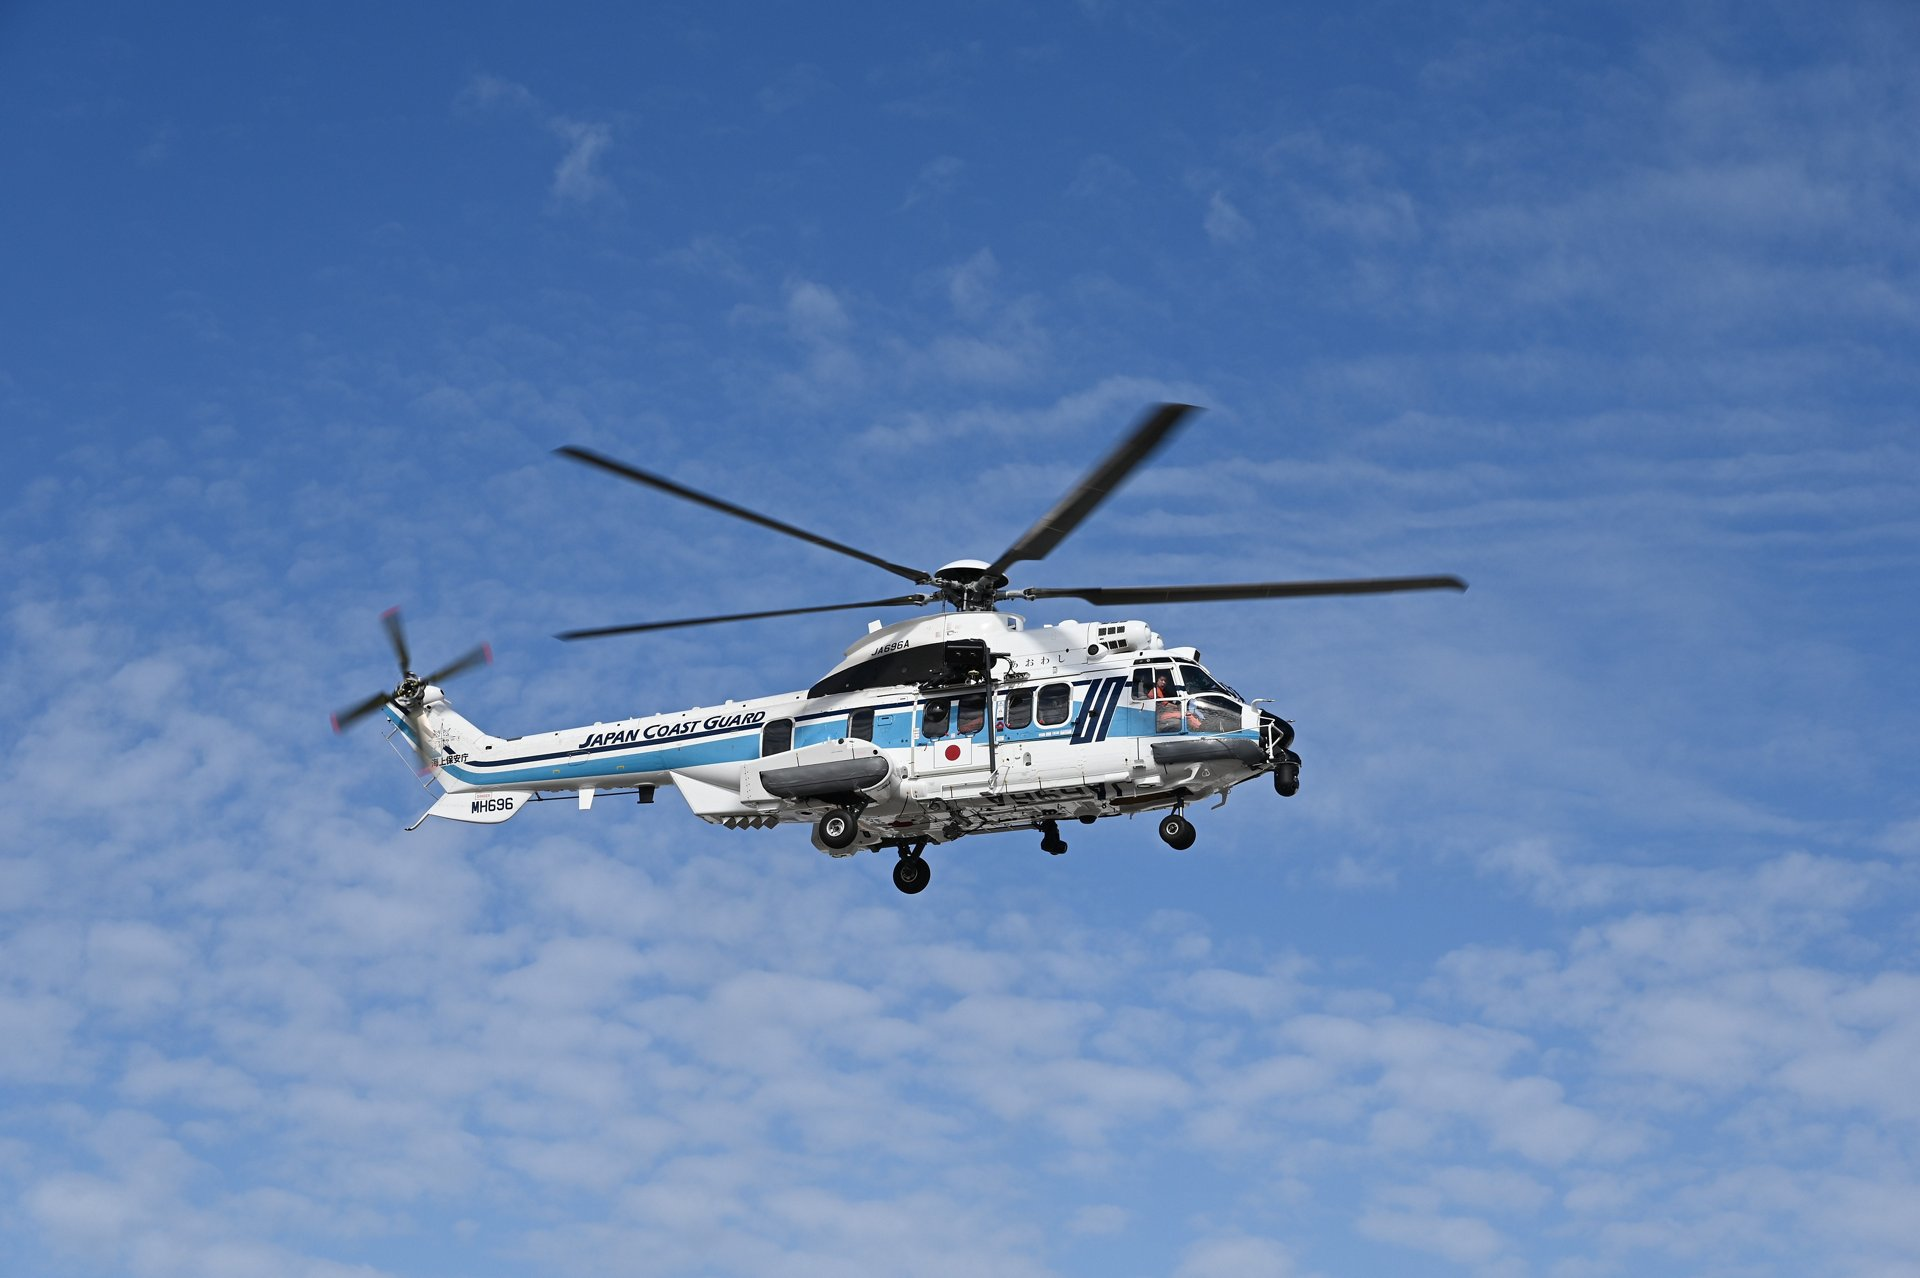 Japan Coast Guard (JCG) will expand its fleet with two new H225 helicopters, taking its total Super Puma fleet up to 17, comprising two AS332s and 15 H225s.